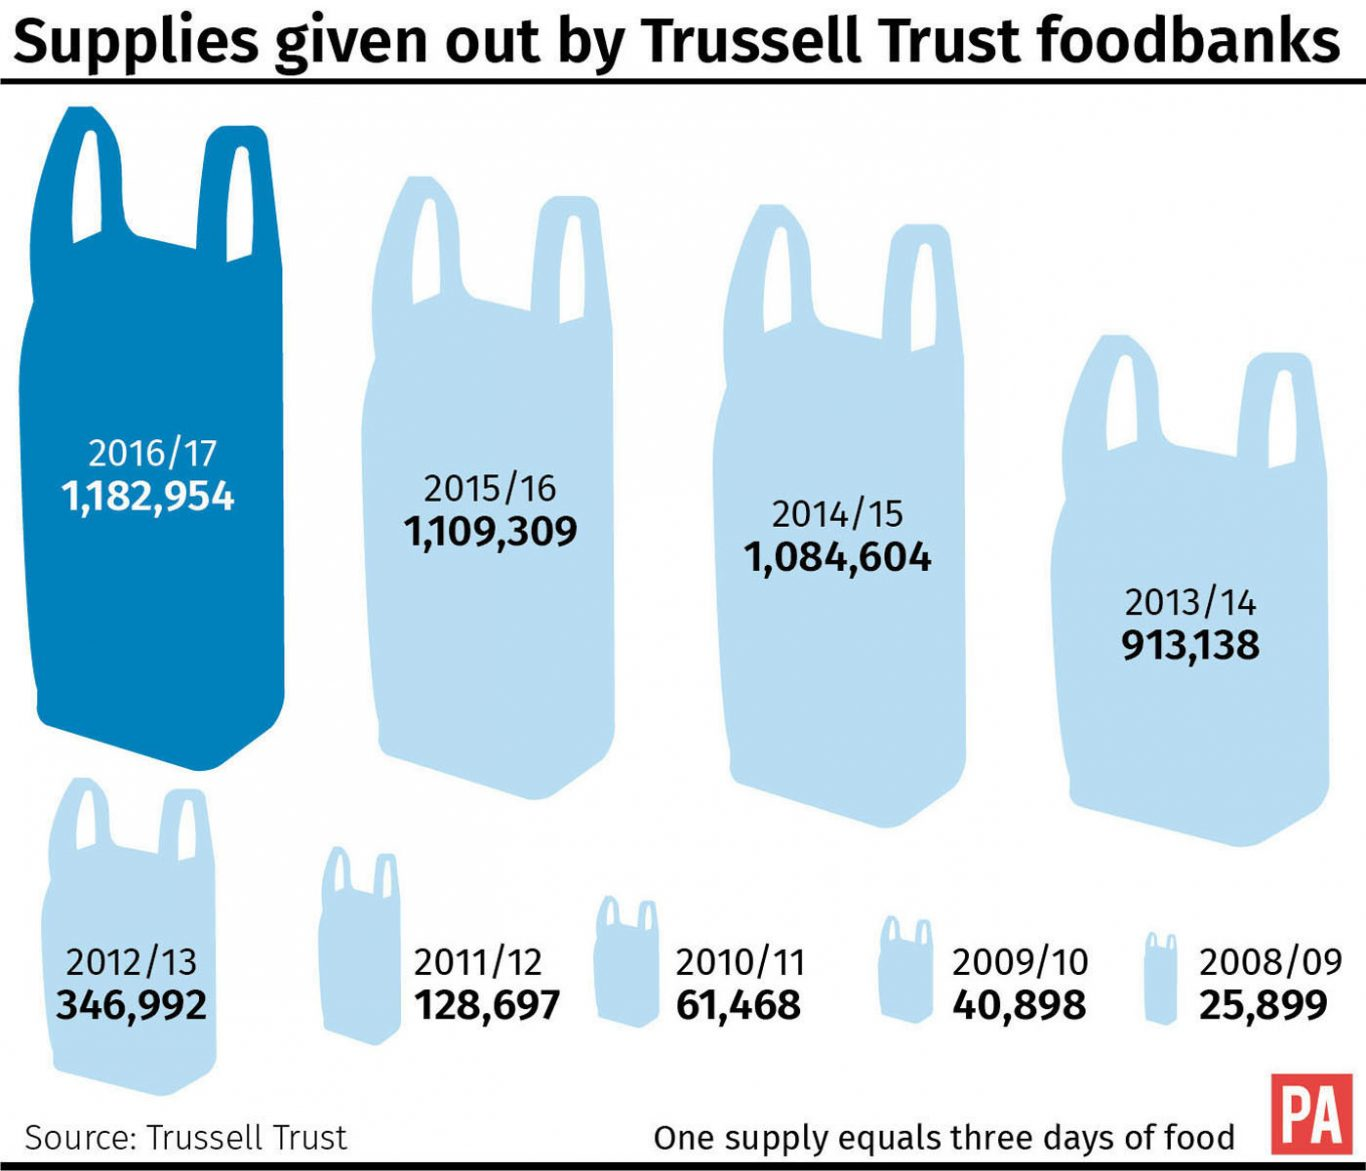 Supplies given out by Trussell Trust foodbanks.